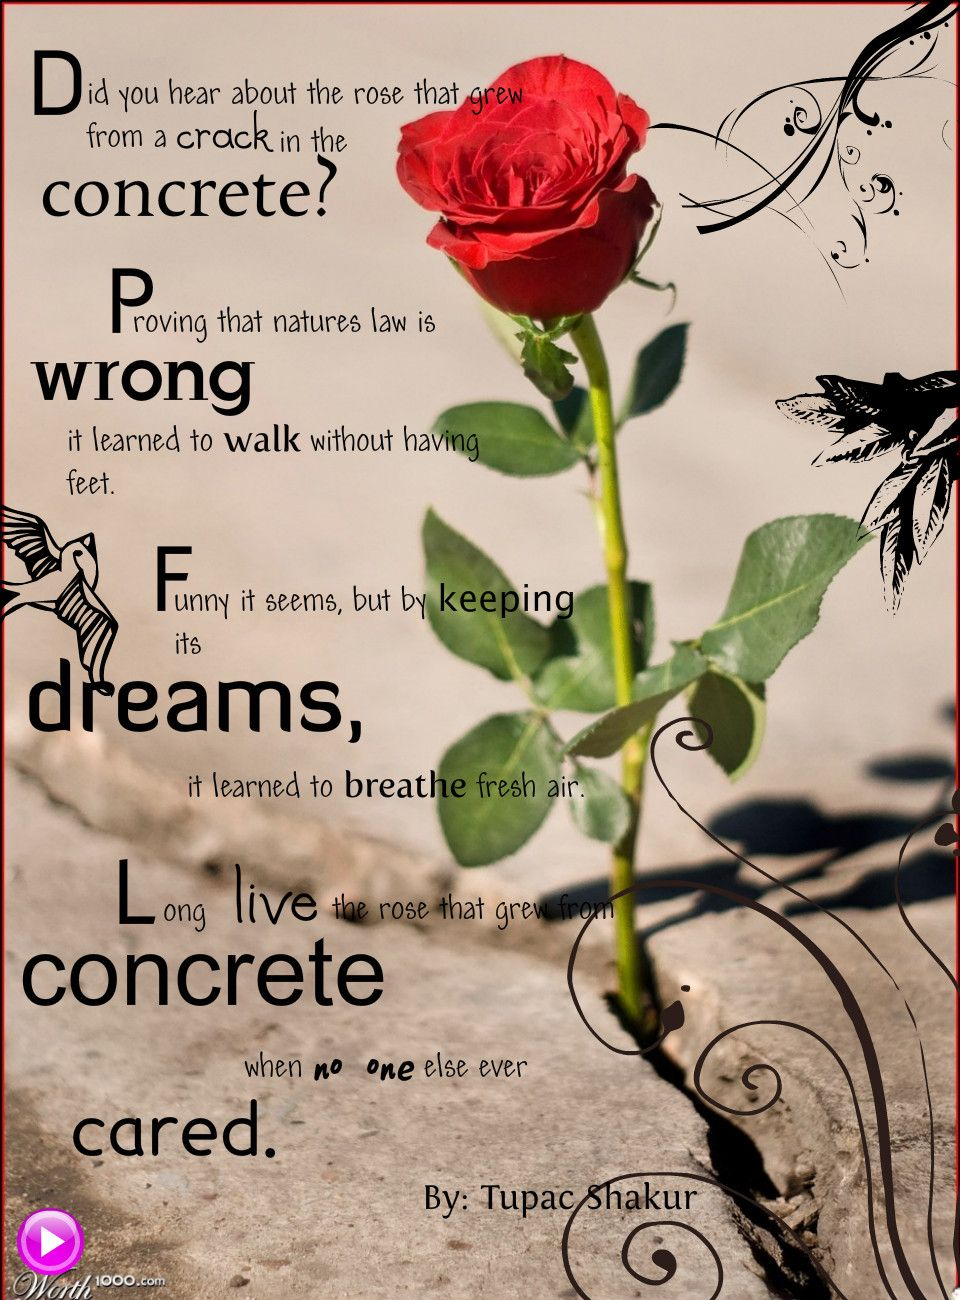 poetic analysis rose that grew from The rose that grew from concrete characters tupac shakur this study guide consists of approximately 21 pages of chapter summaries, quotes, character analysis, themes, and more - everything you need to sharpen your knowledge of the rose that grew from concrete.